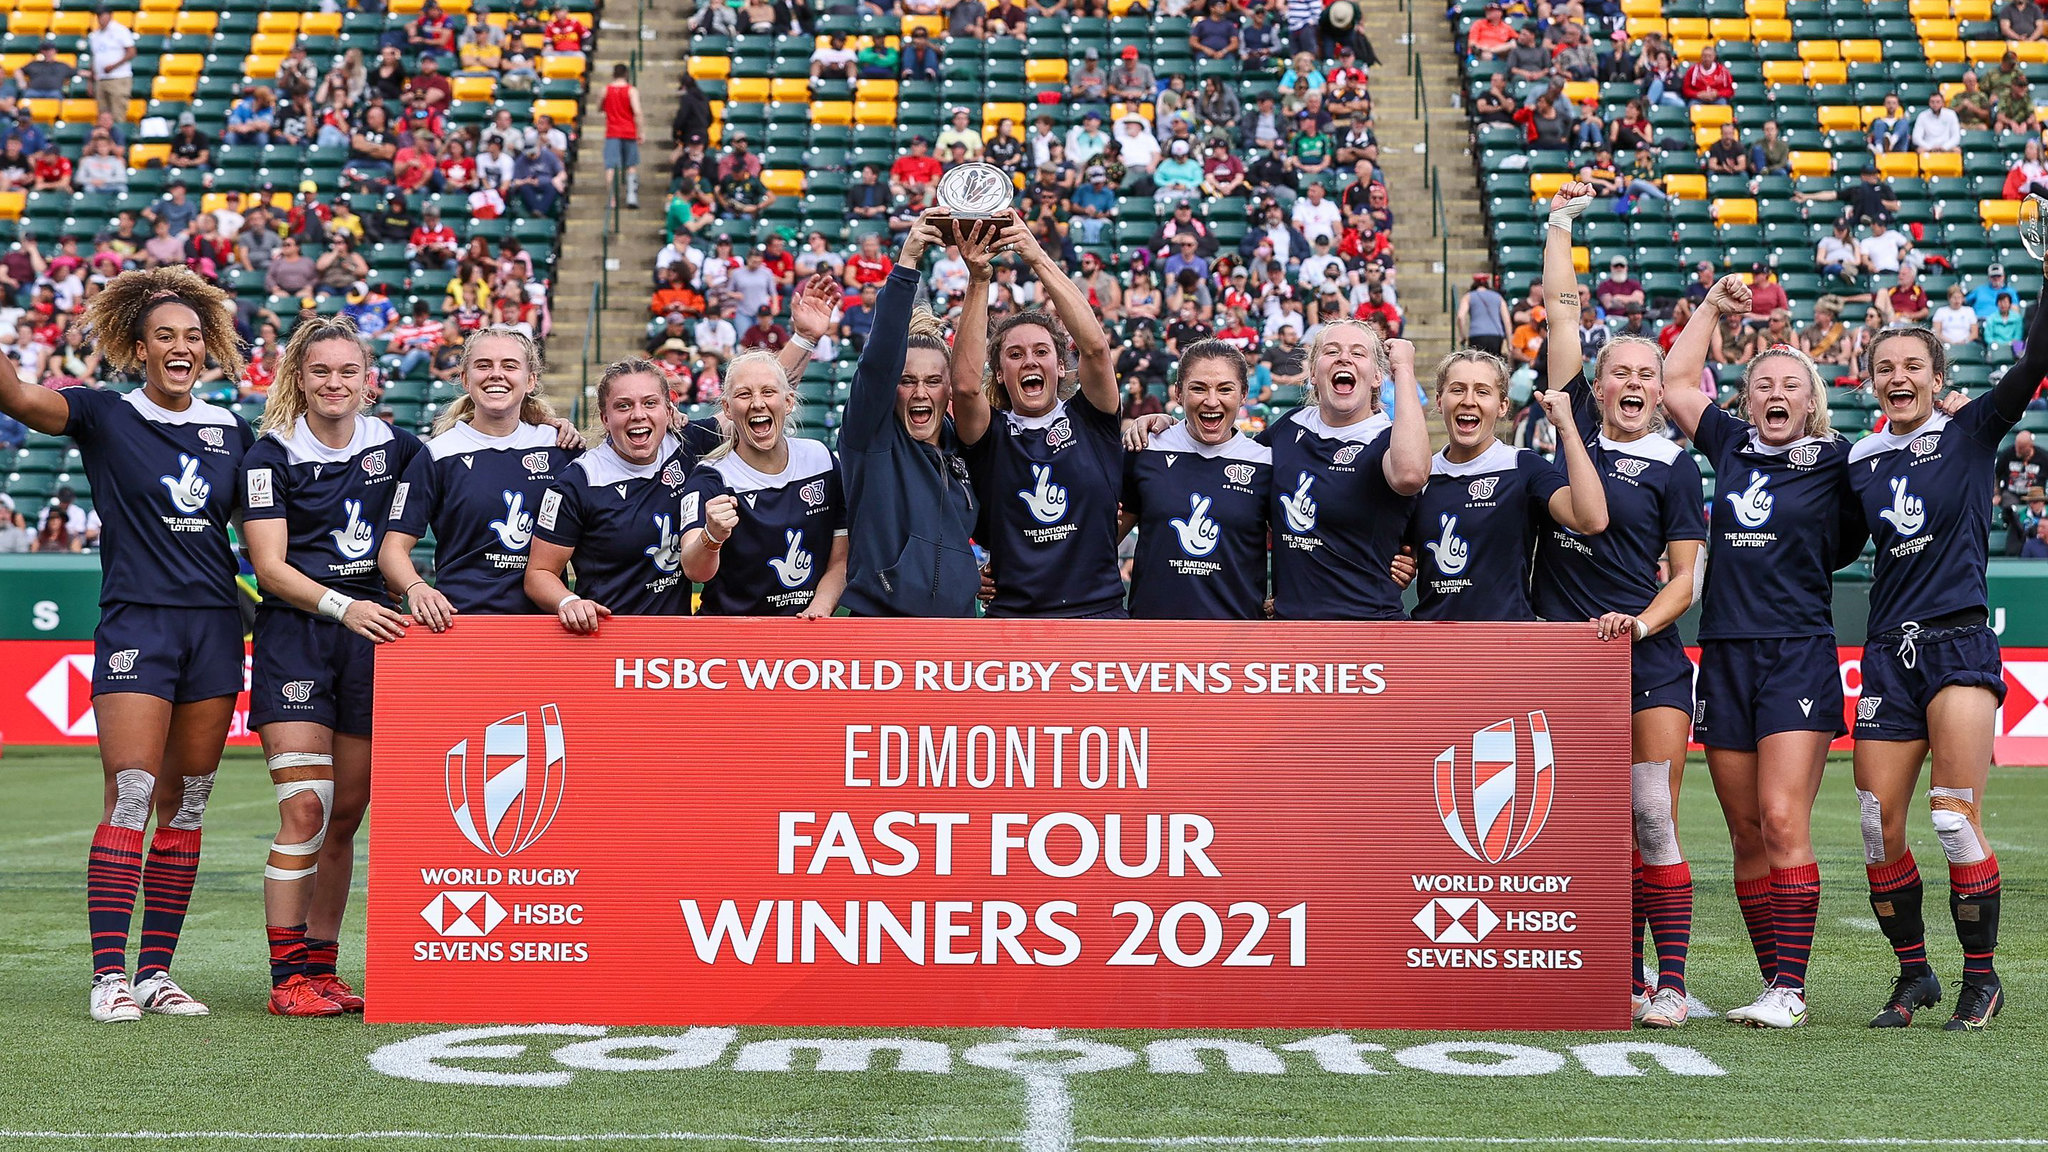 The GB Rugby 7s squad celebrate their win in Edmonton.